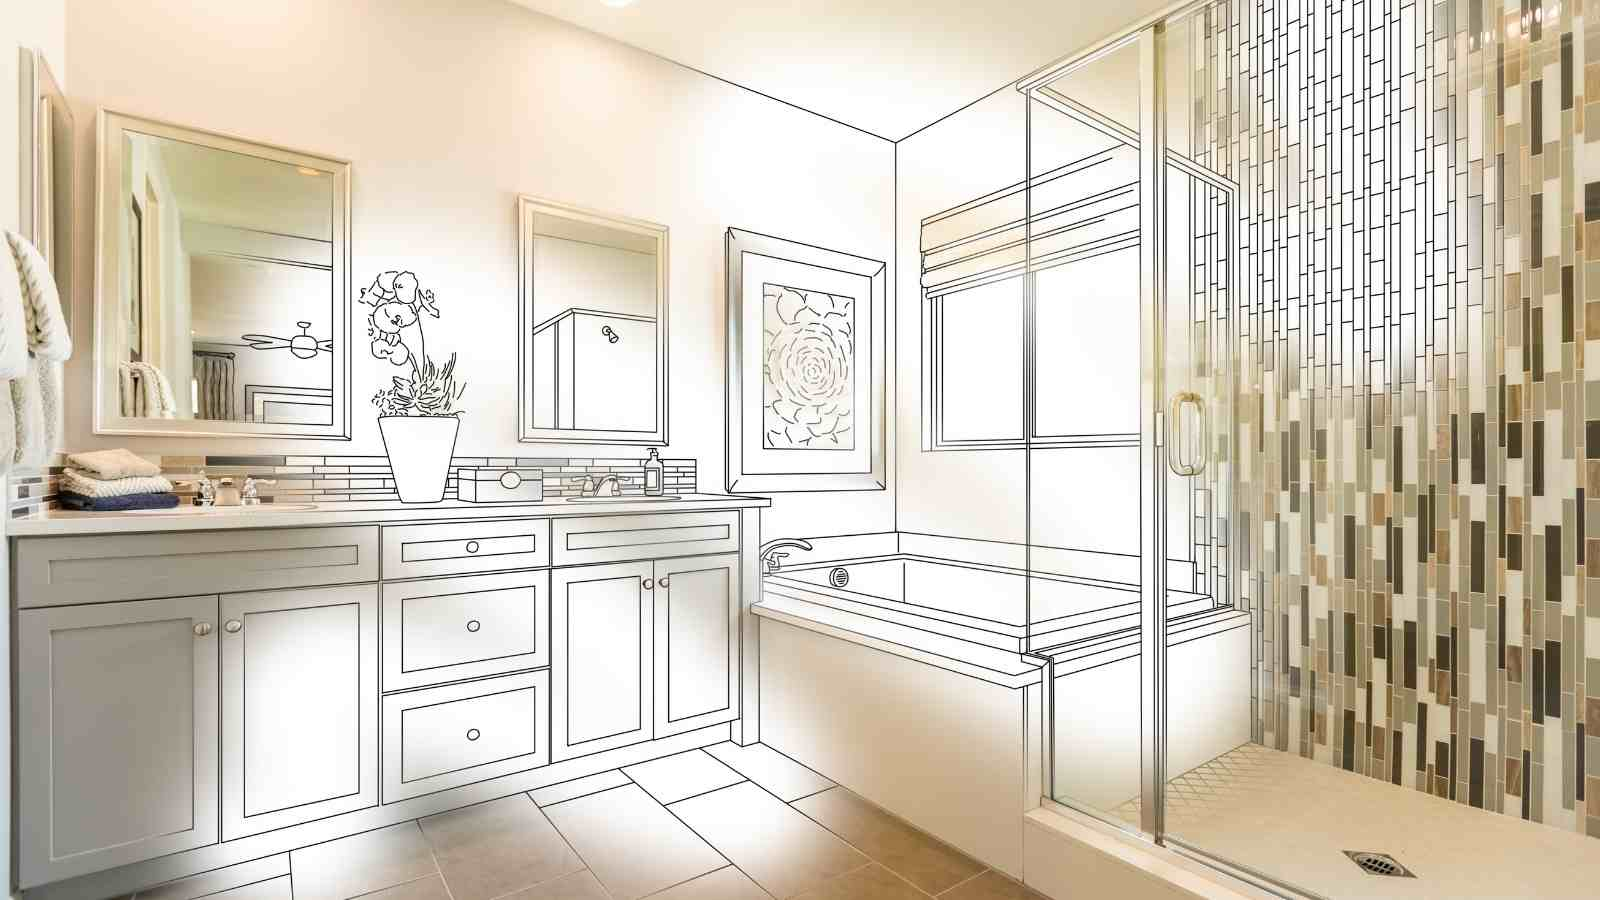 35 amazing bathroom remodel diy ideas that give a stunning for Stunning bathroom designs